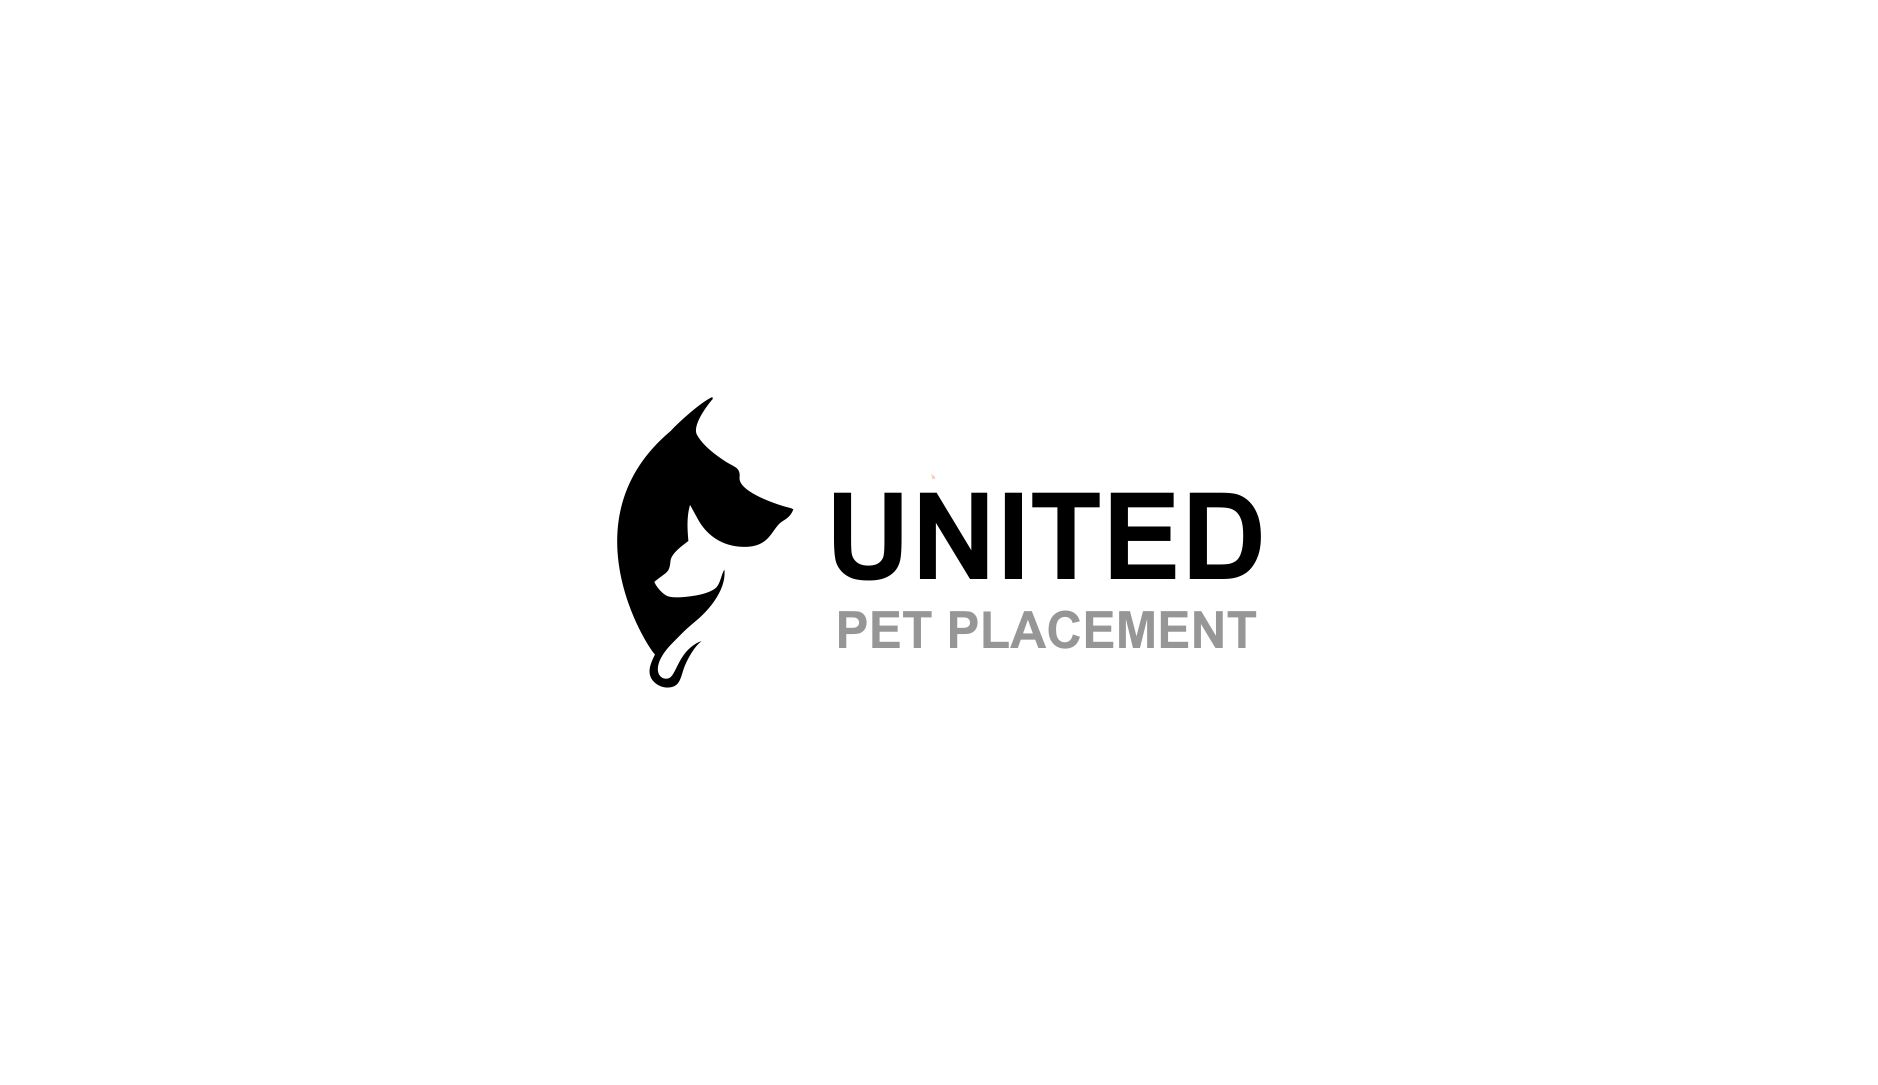 Logo Design by Muhammad Aslam - Entry No. 14 in the Logo Design Contest Artistic Logo Design for united pet placement.